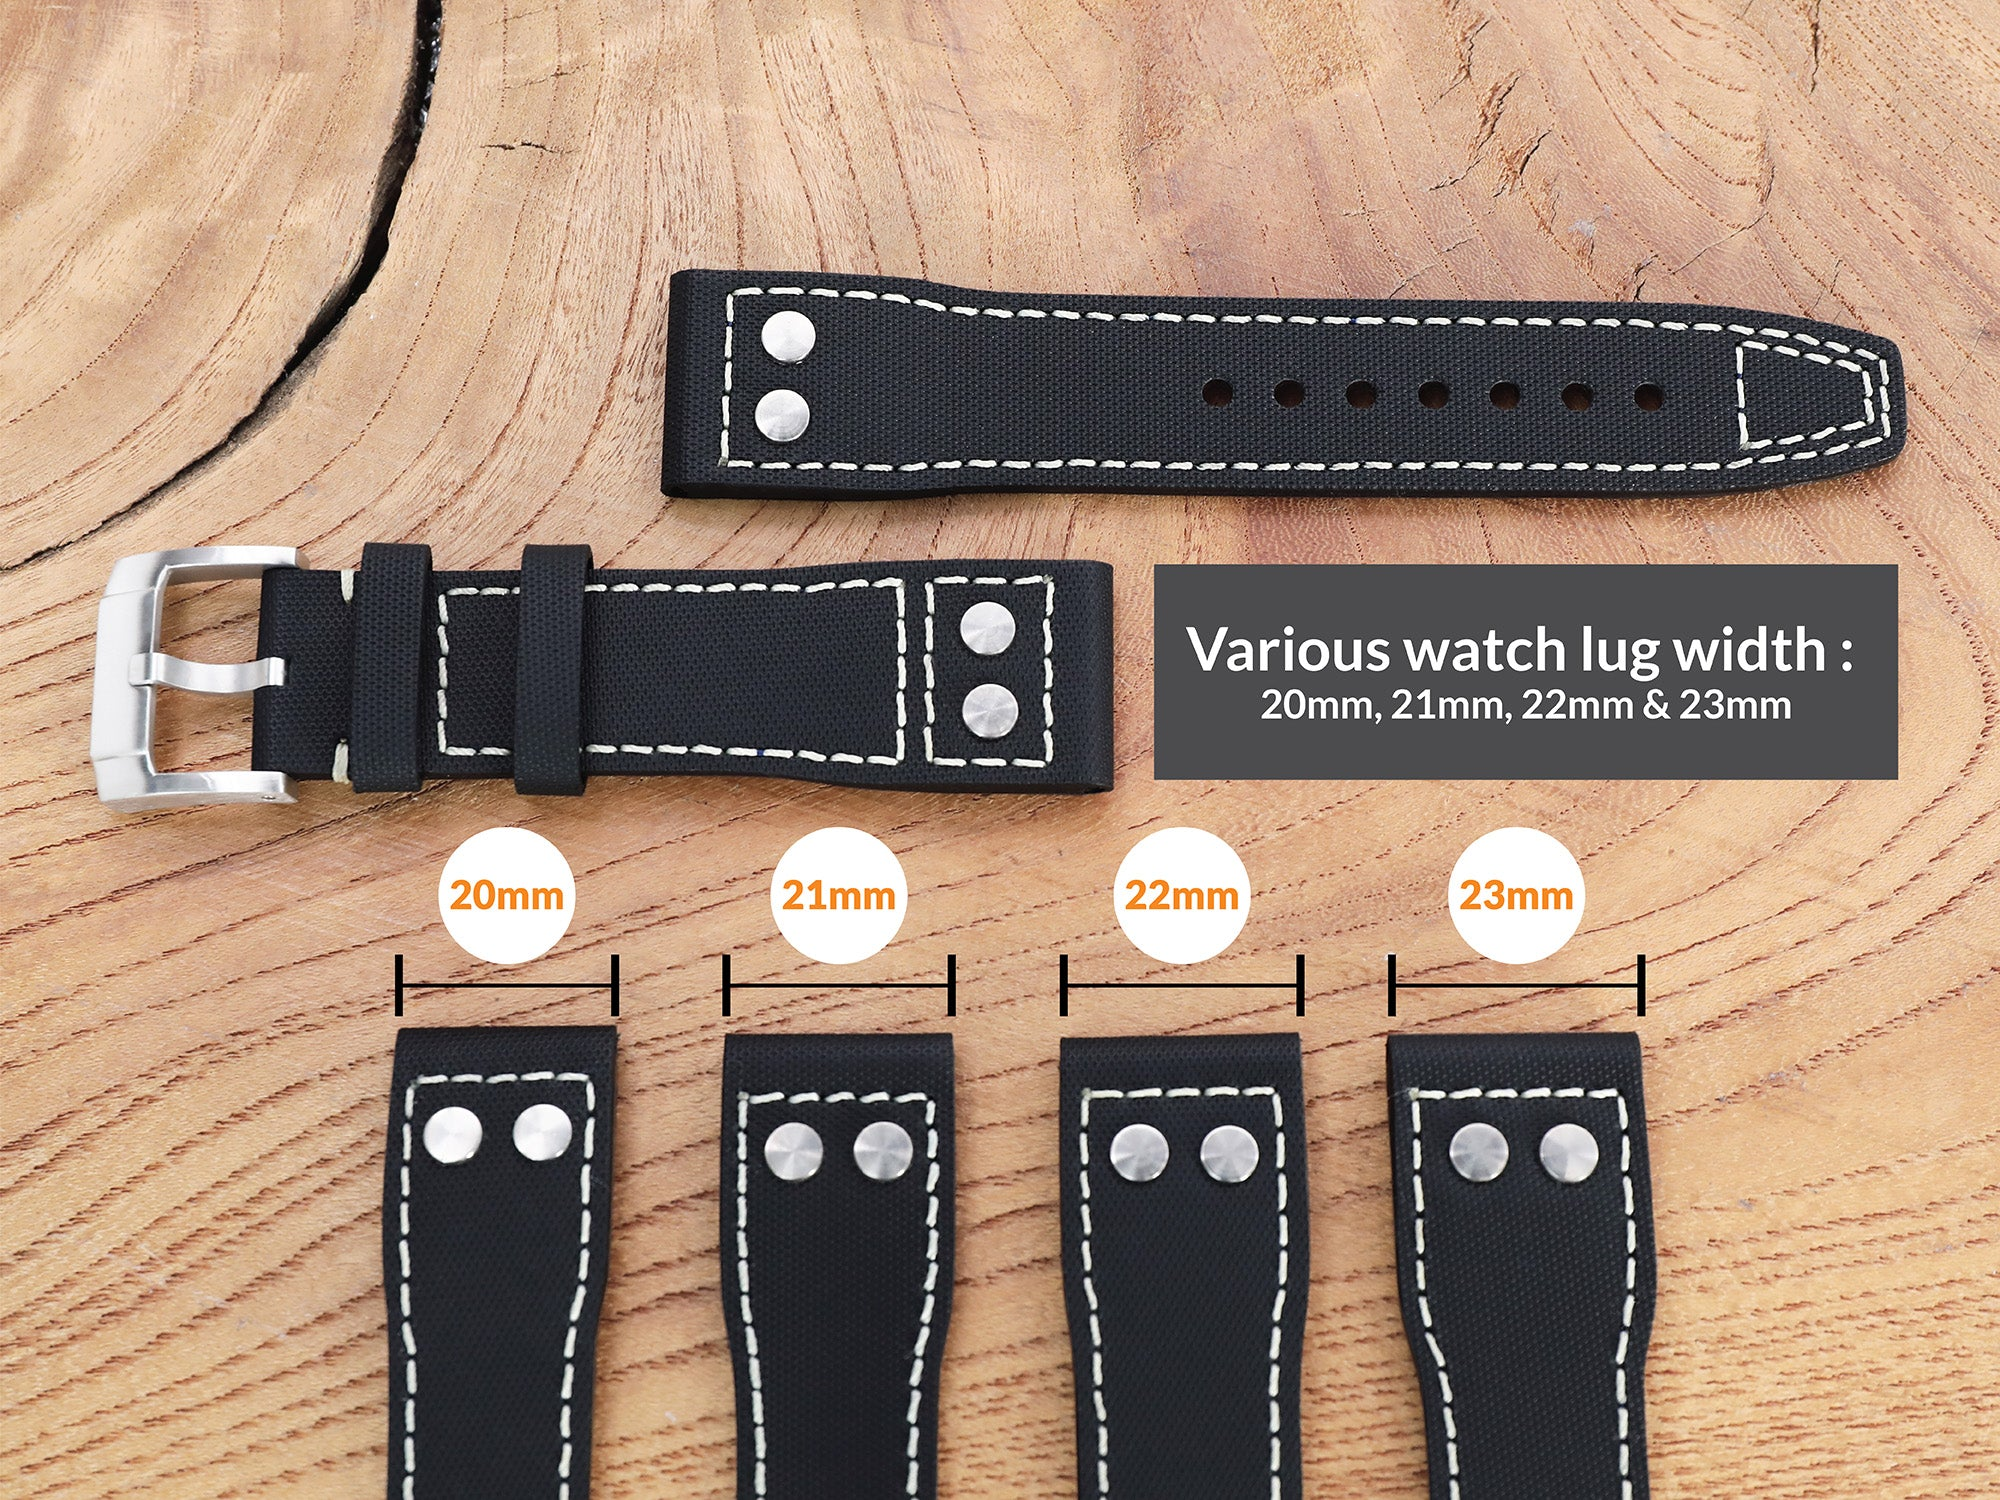 strapcode-watch-bands-Watch-Band-Terminology-C-01